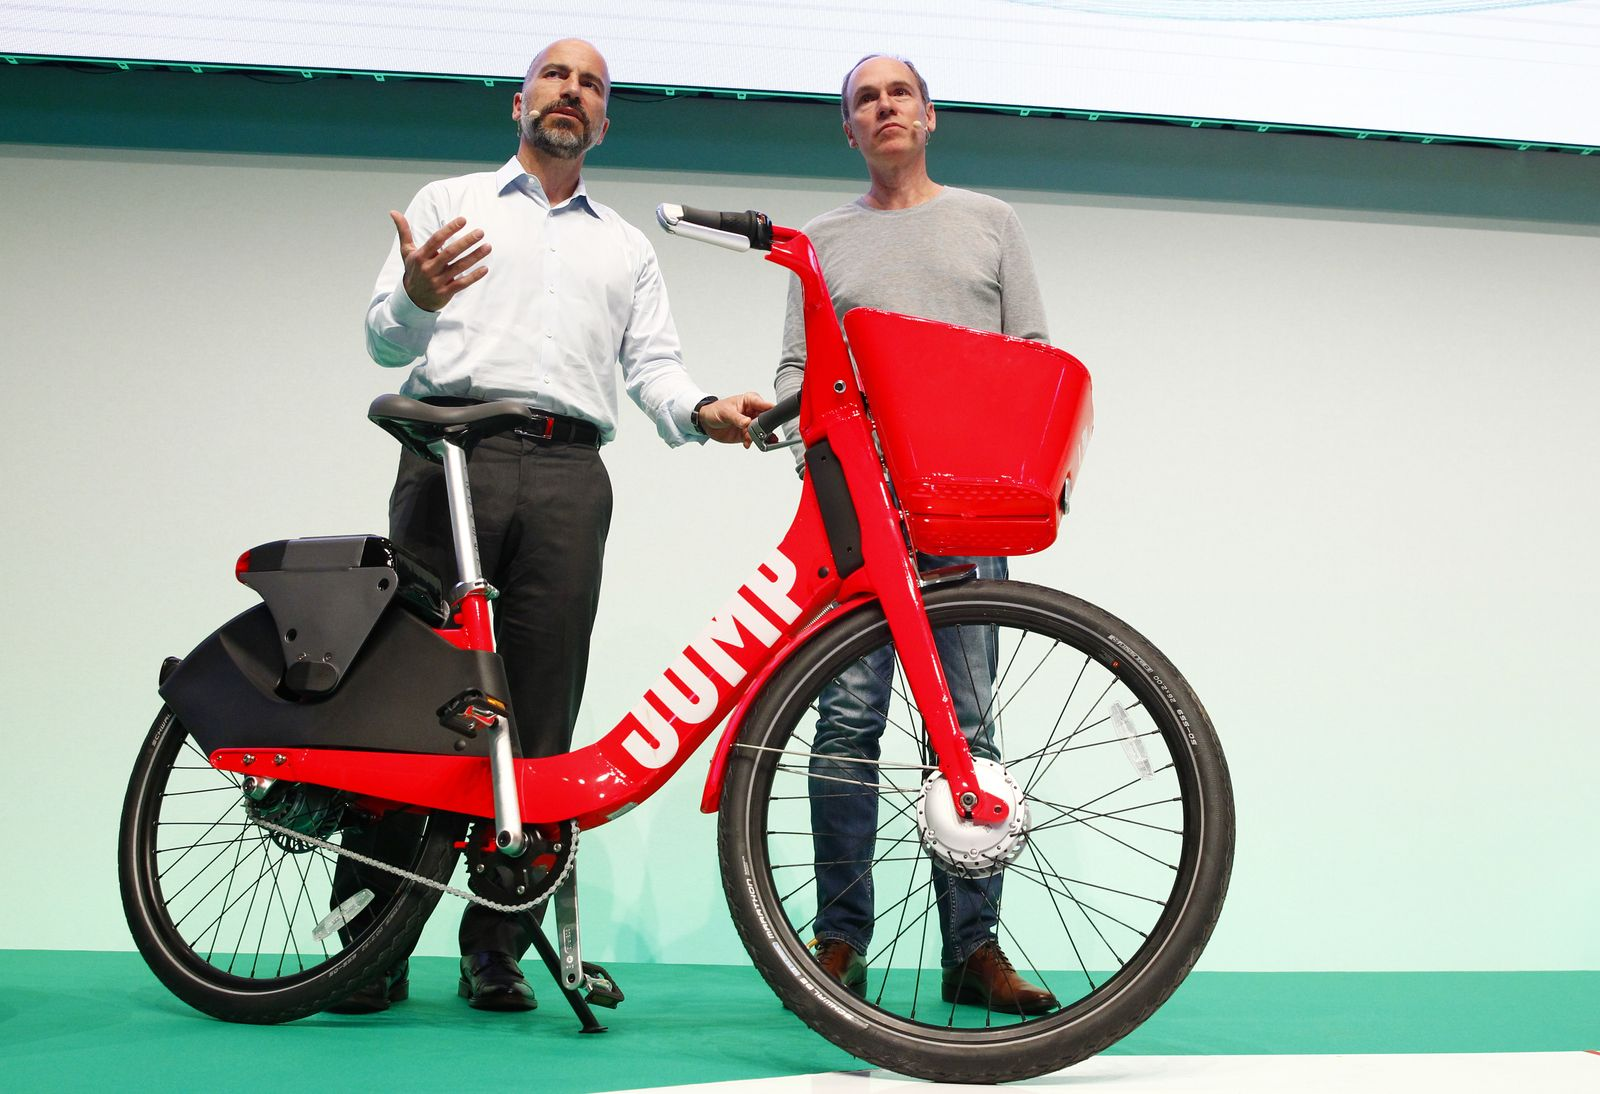 Dara Khosrowshahi / City Bike Sharing service / Jump